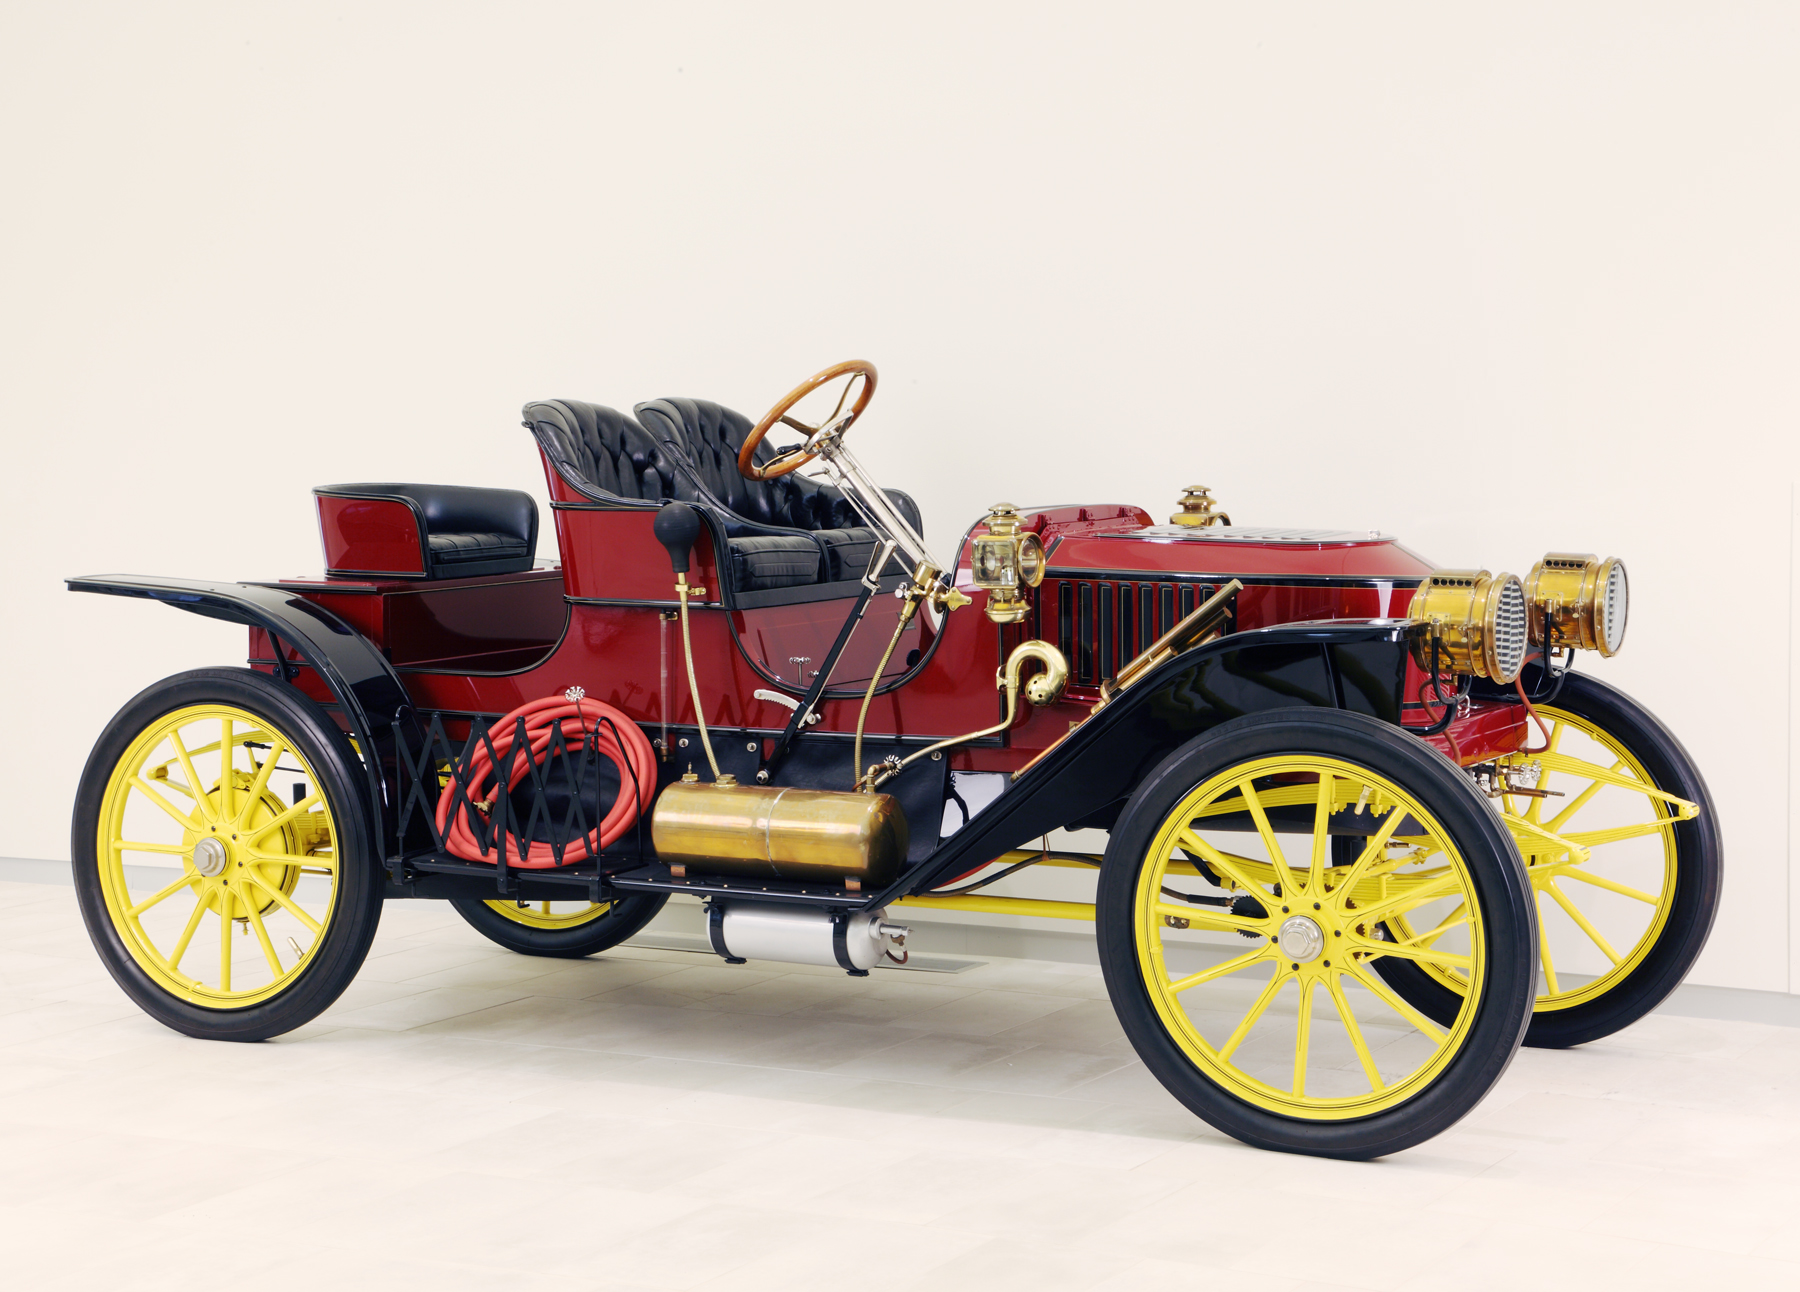 Futuristic vision from the past: a 1909 Stanley Steamer.